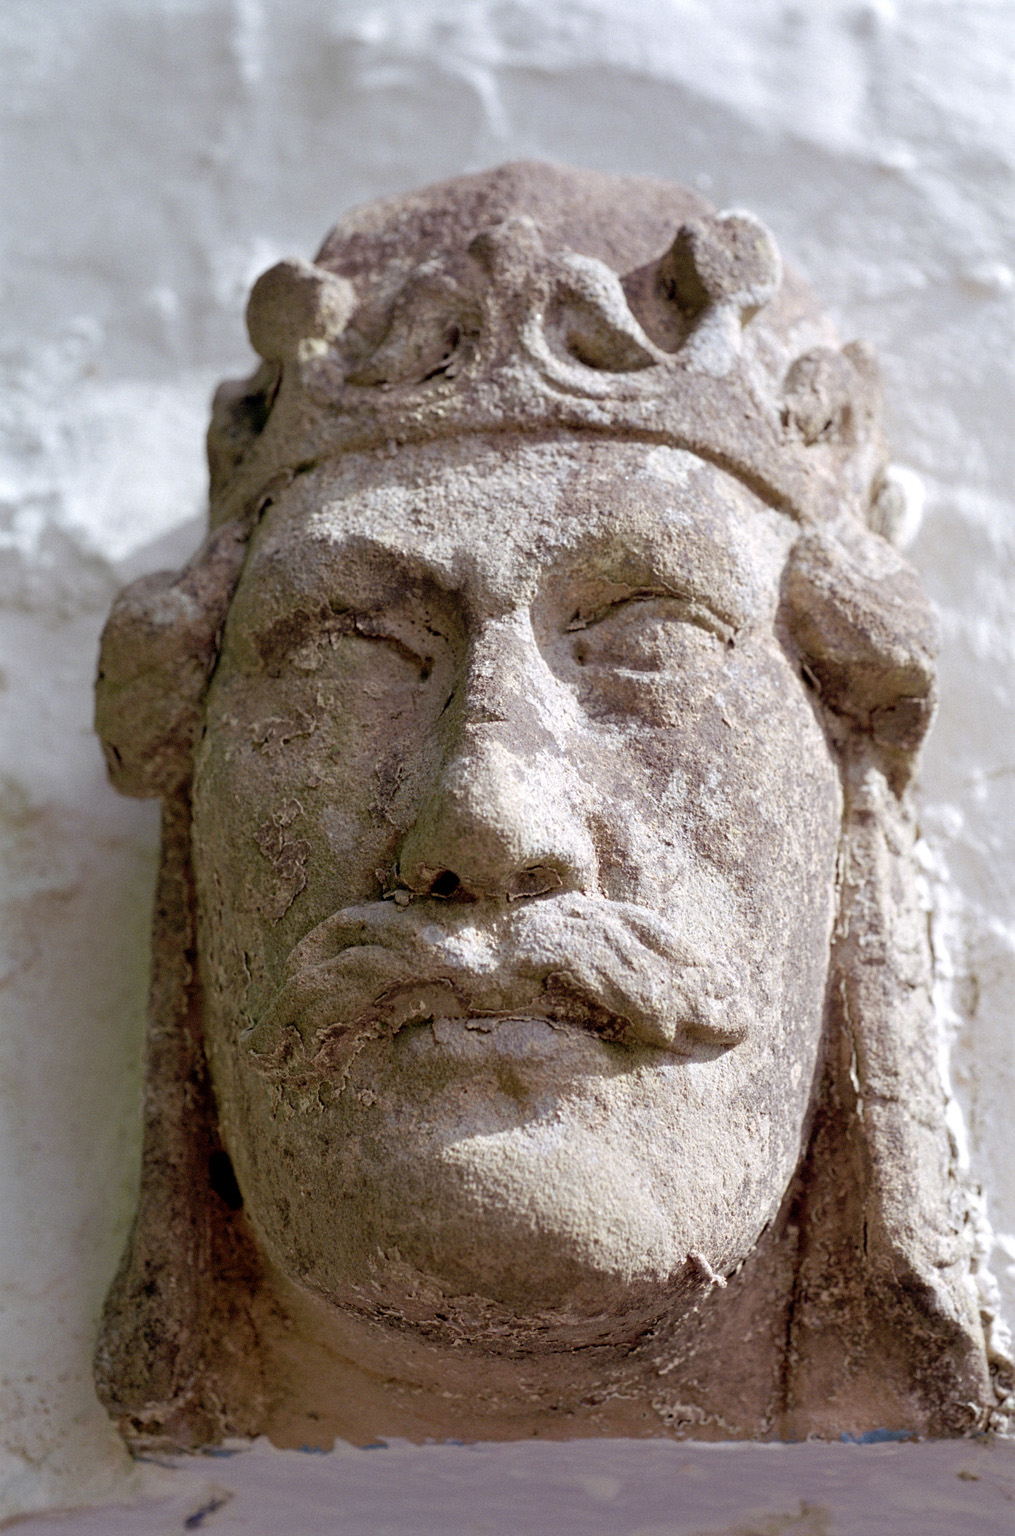 The sculpted stone head of an ancient imposing king wearing a crown, symbol of royal historical authority, close-up